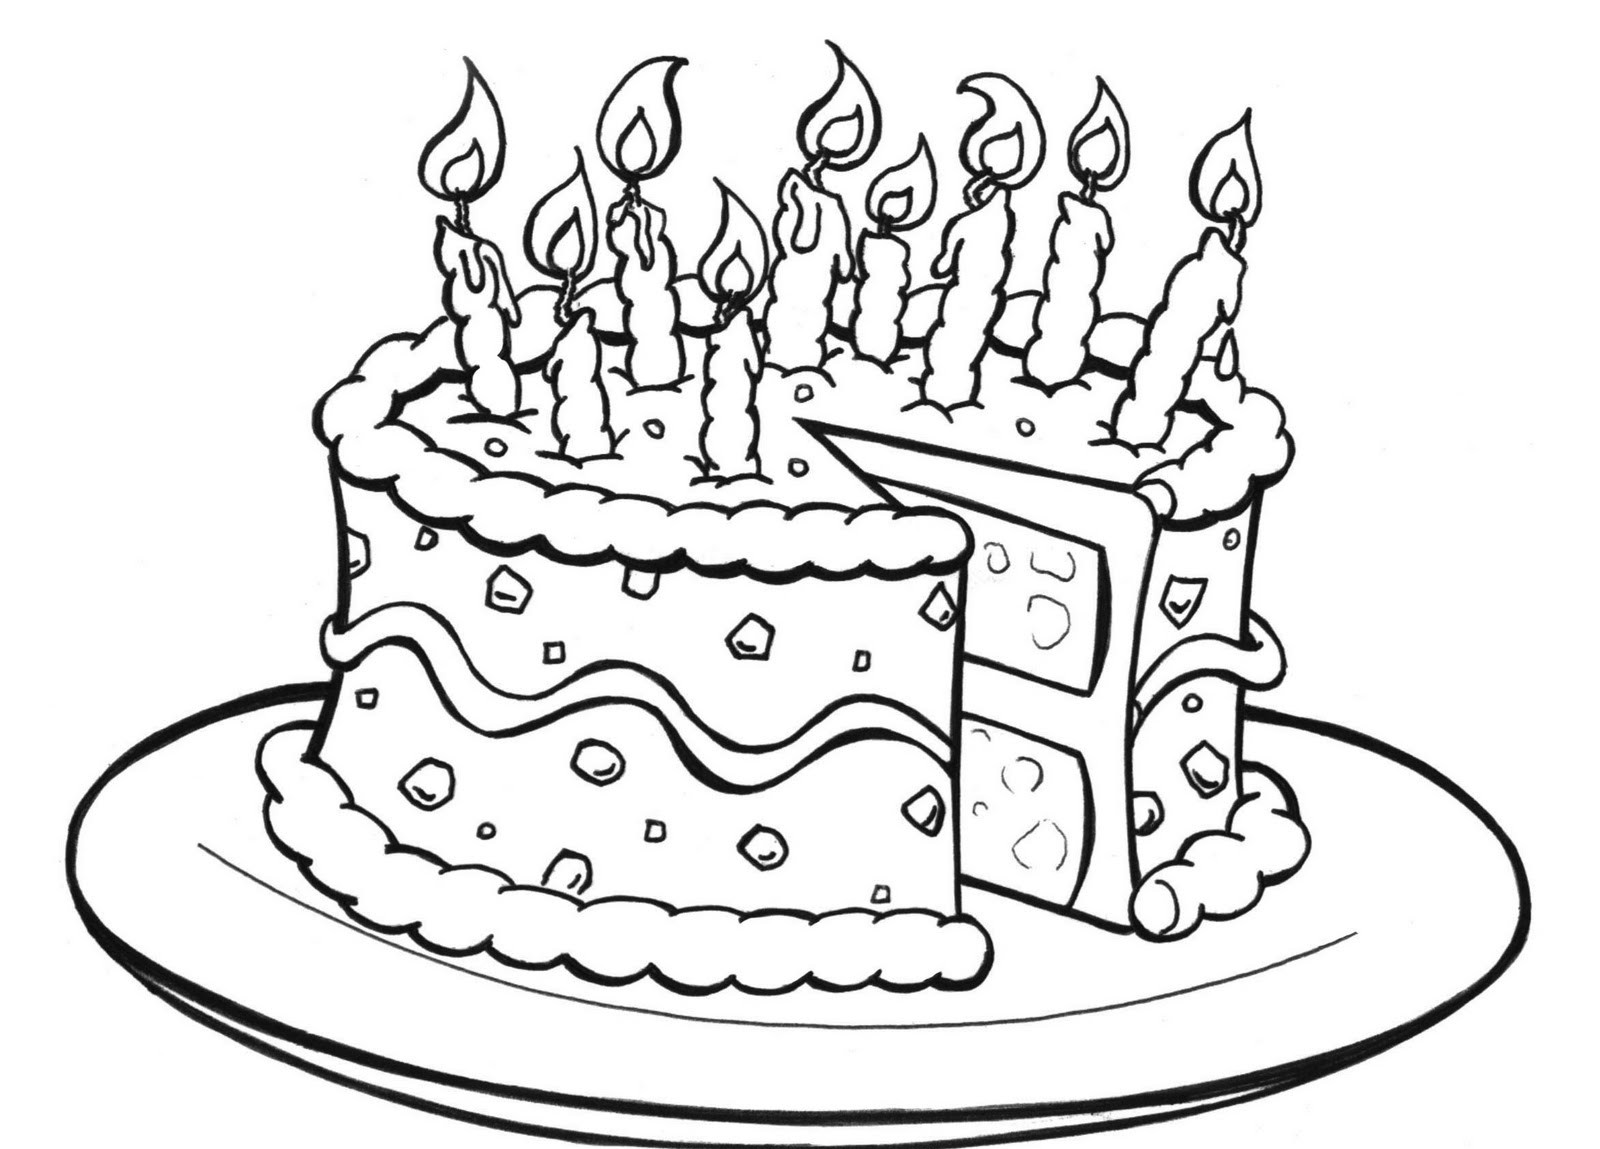 pictures of birthday cakes to colour in ; Birthday-Cake-Coloring-Pages